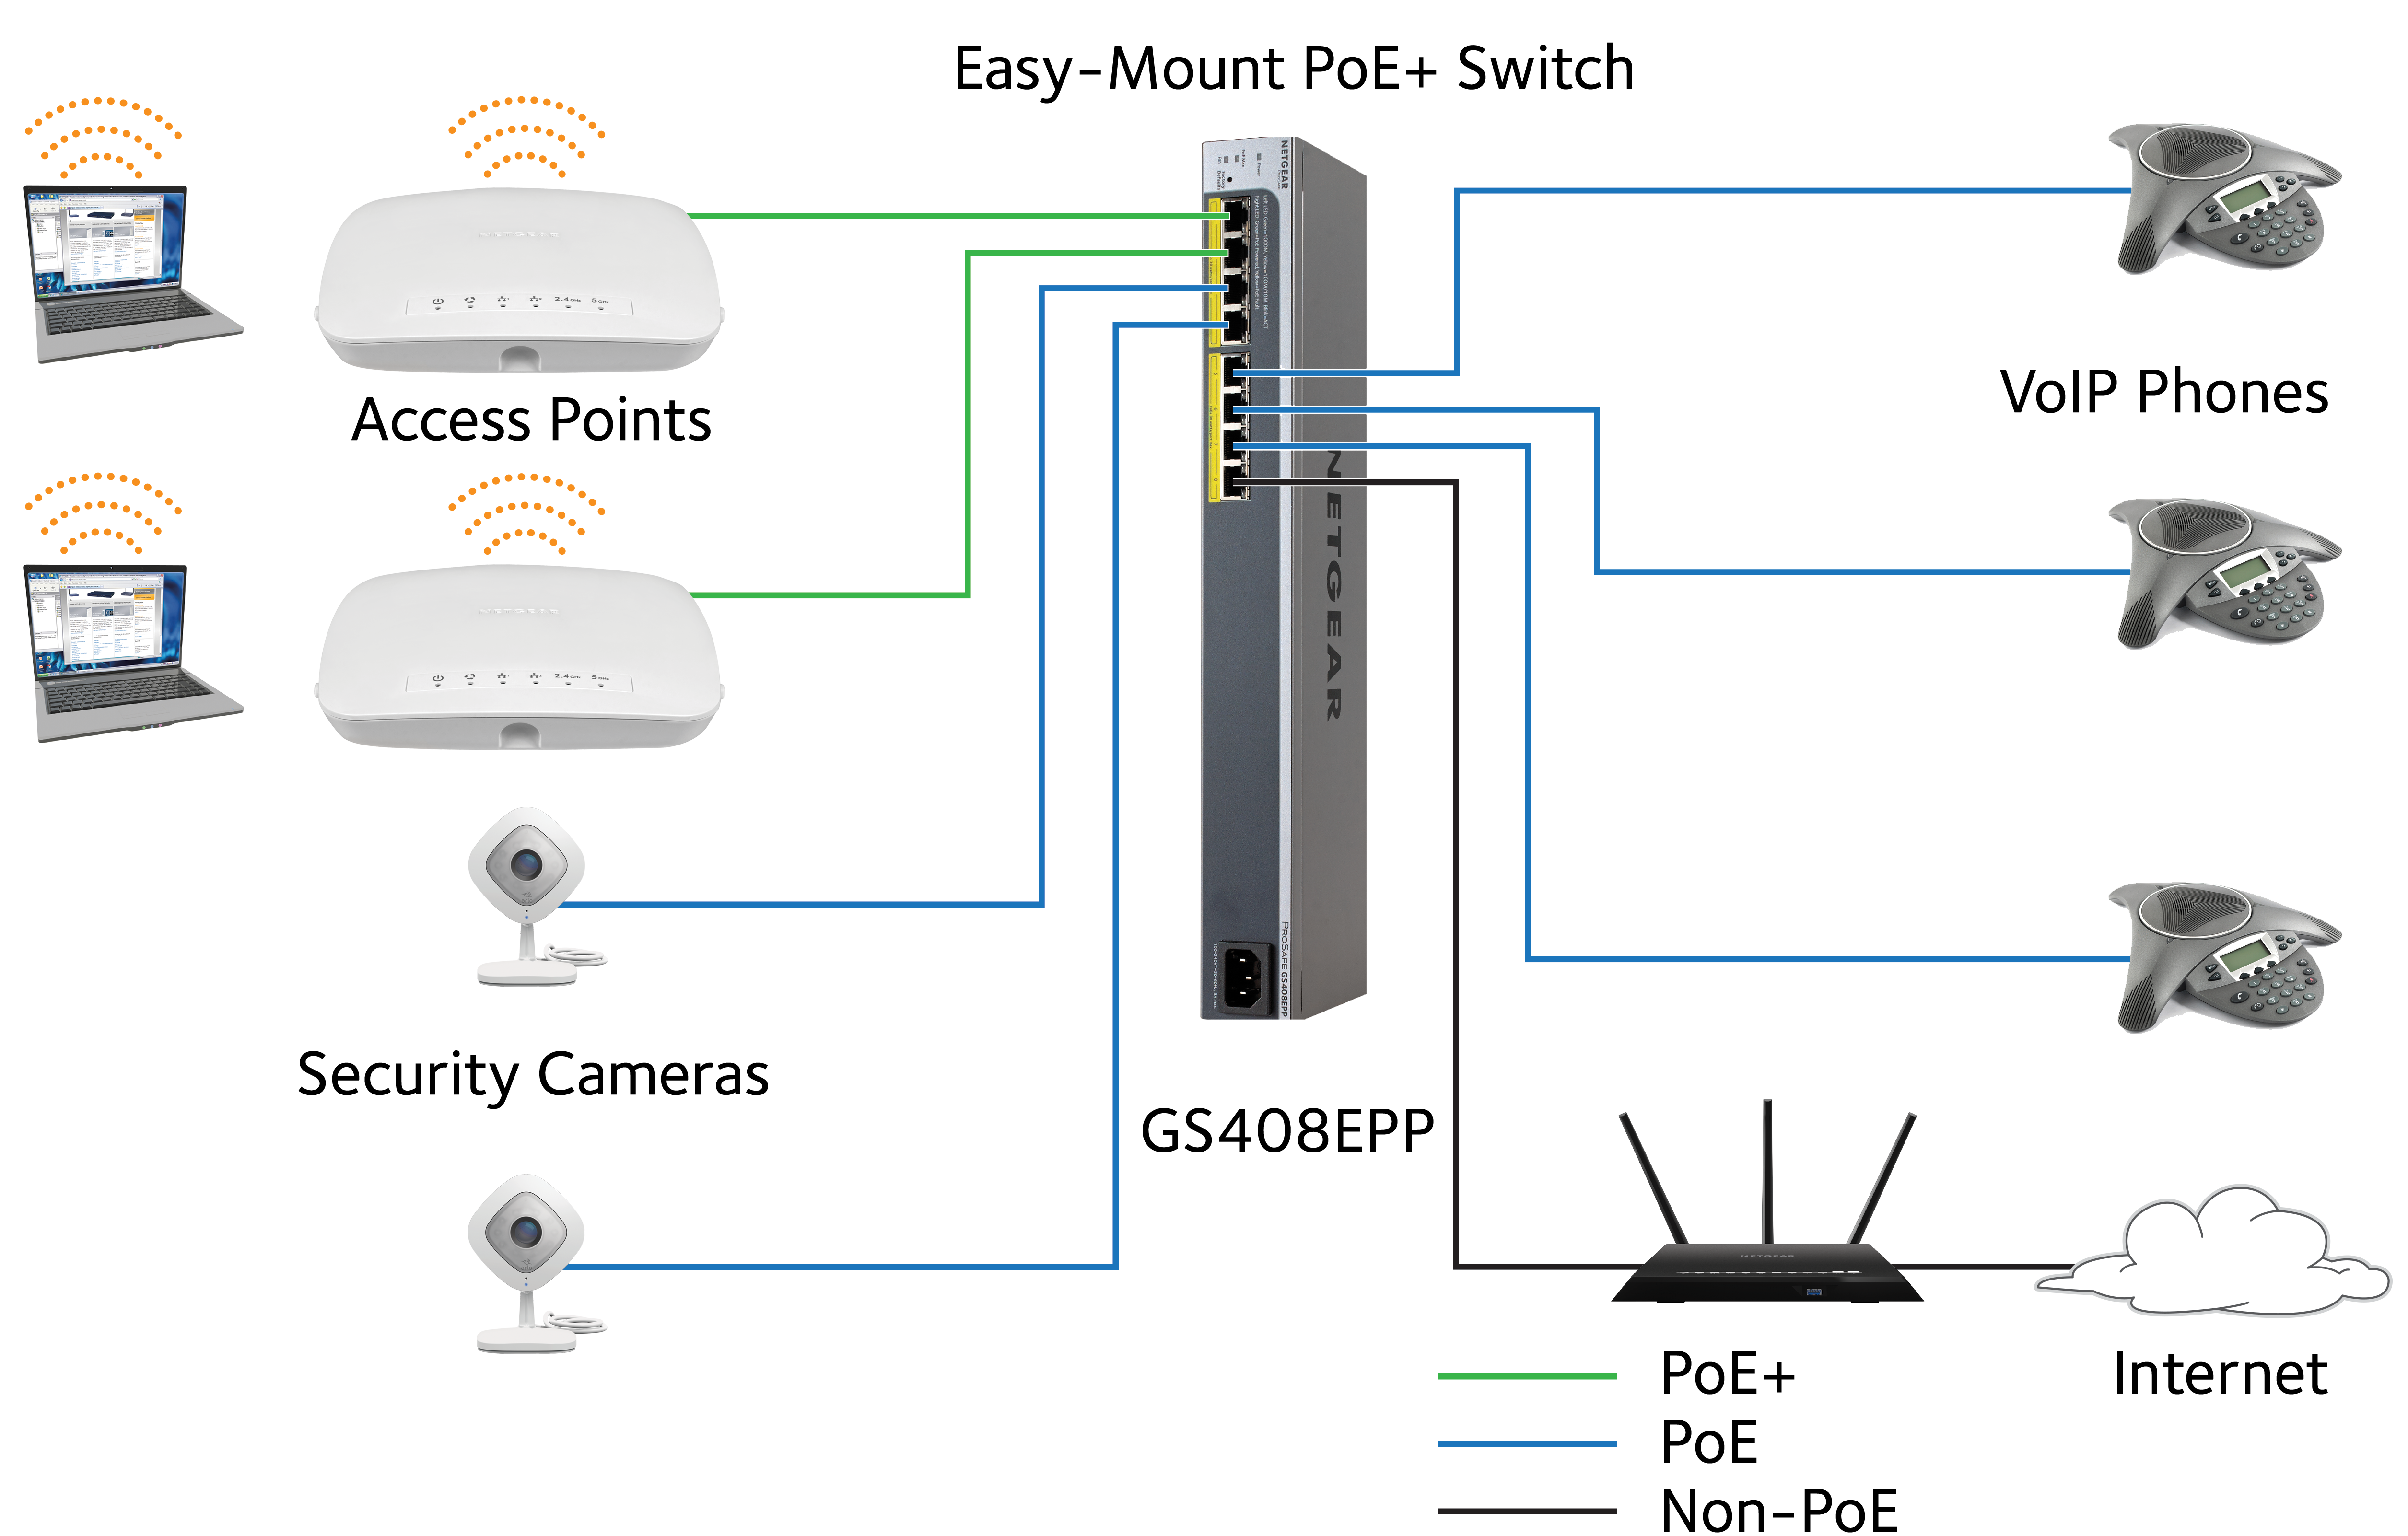 Easy Mount Switches Series Gs408epp Home Blog Product Highlights Poe Network Switch For Ip Camera Review In An Smb